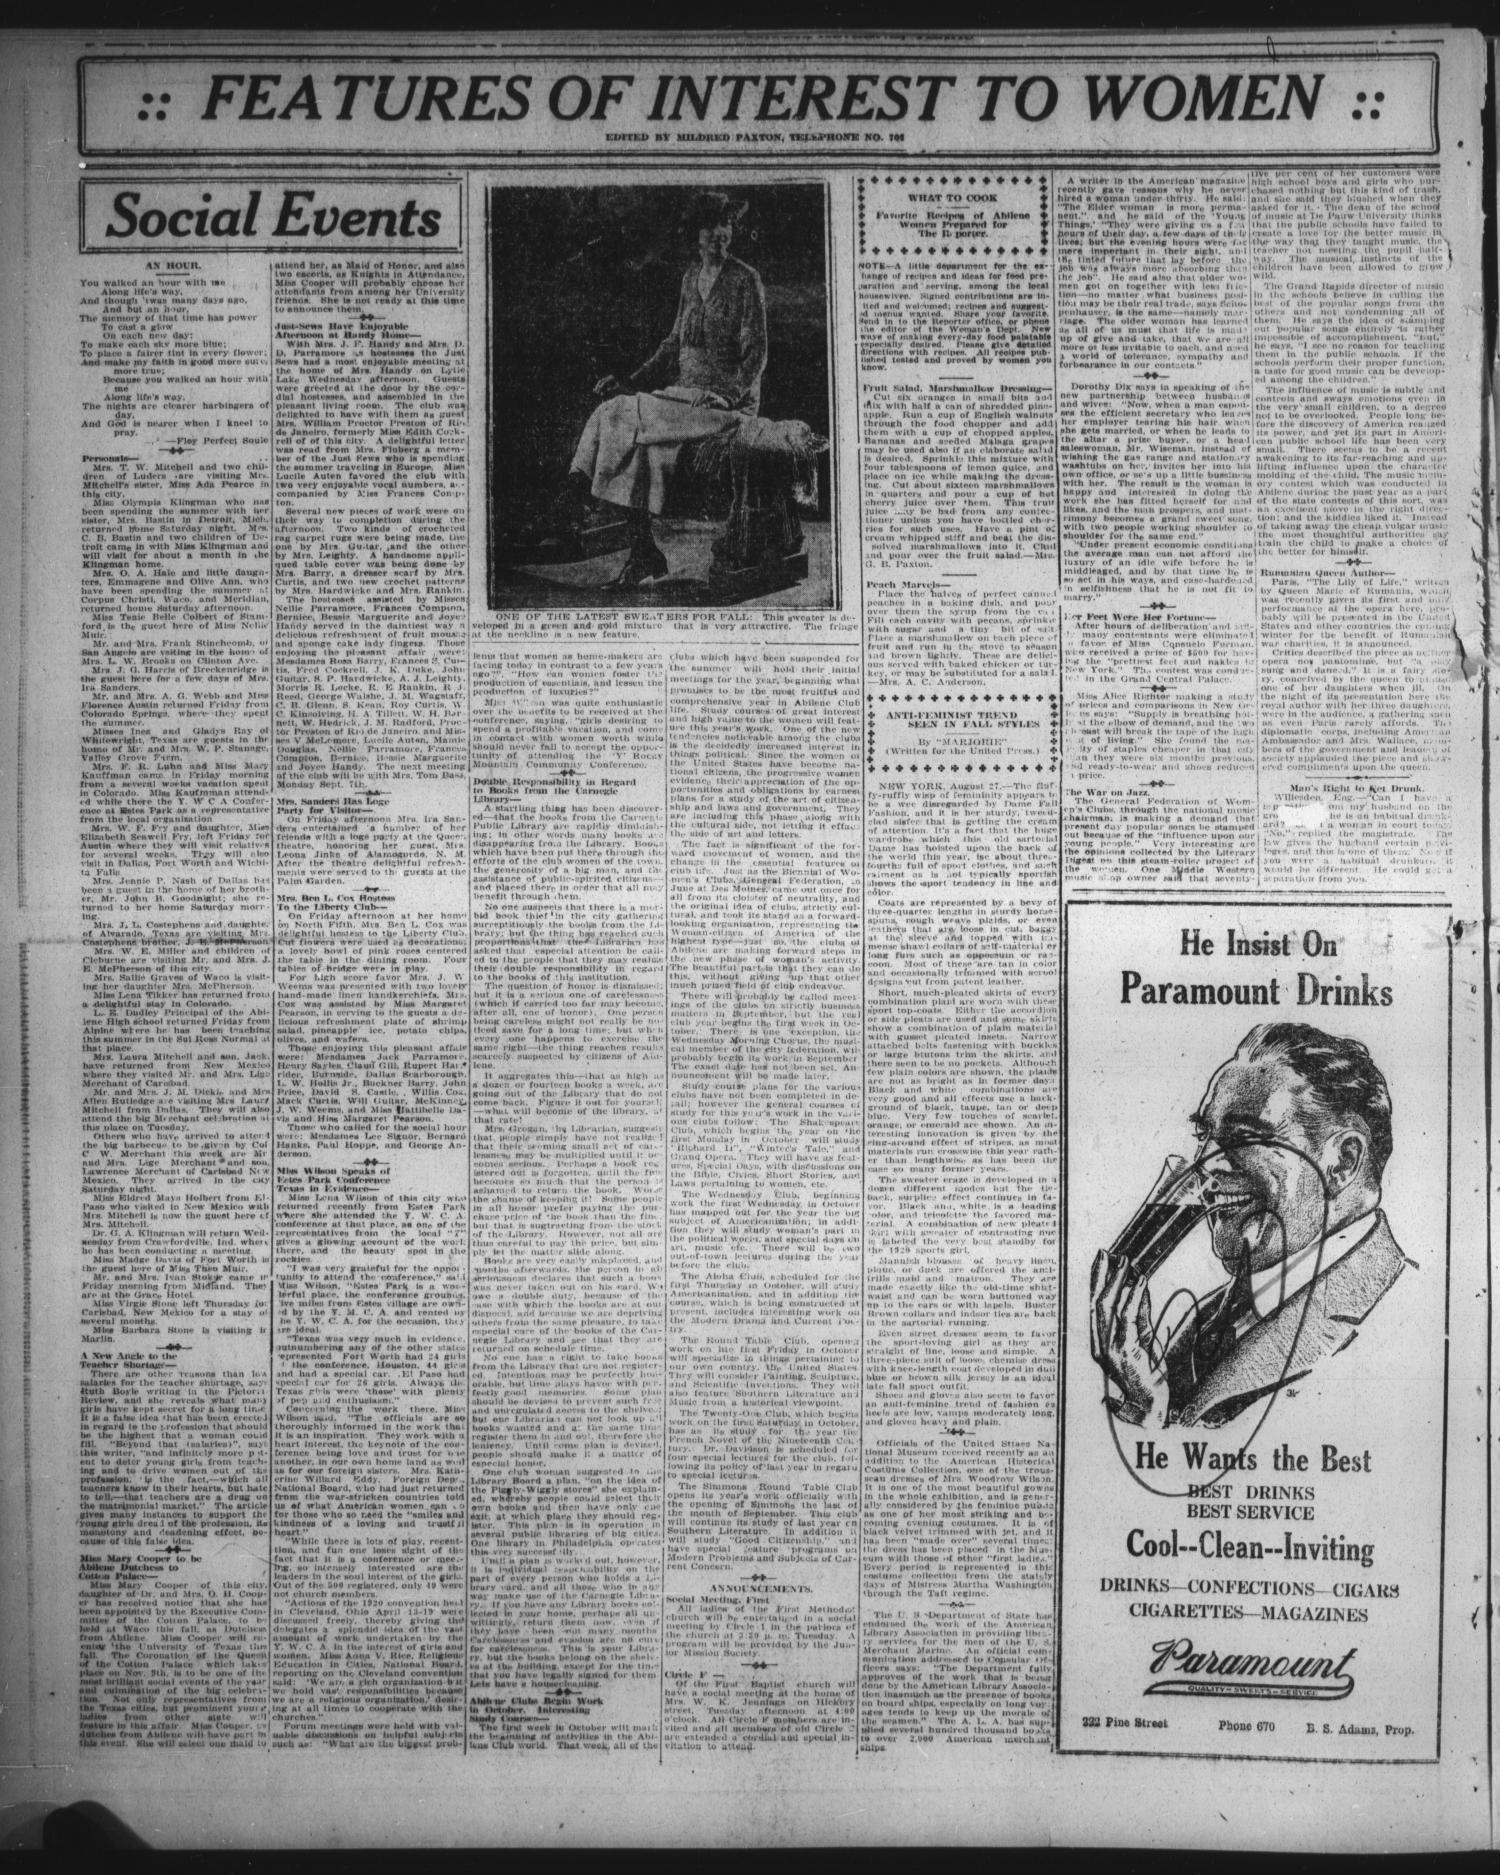 953771daf The Abilene Daily Reporter (Abilene, Tex.), Vol. 33, No. 228, Ed. 1 Sunday,  August 29, 1920 - Page 8 of 20 - The Portal to Texas History